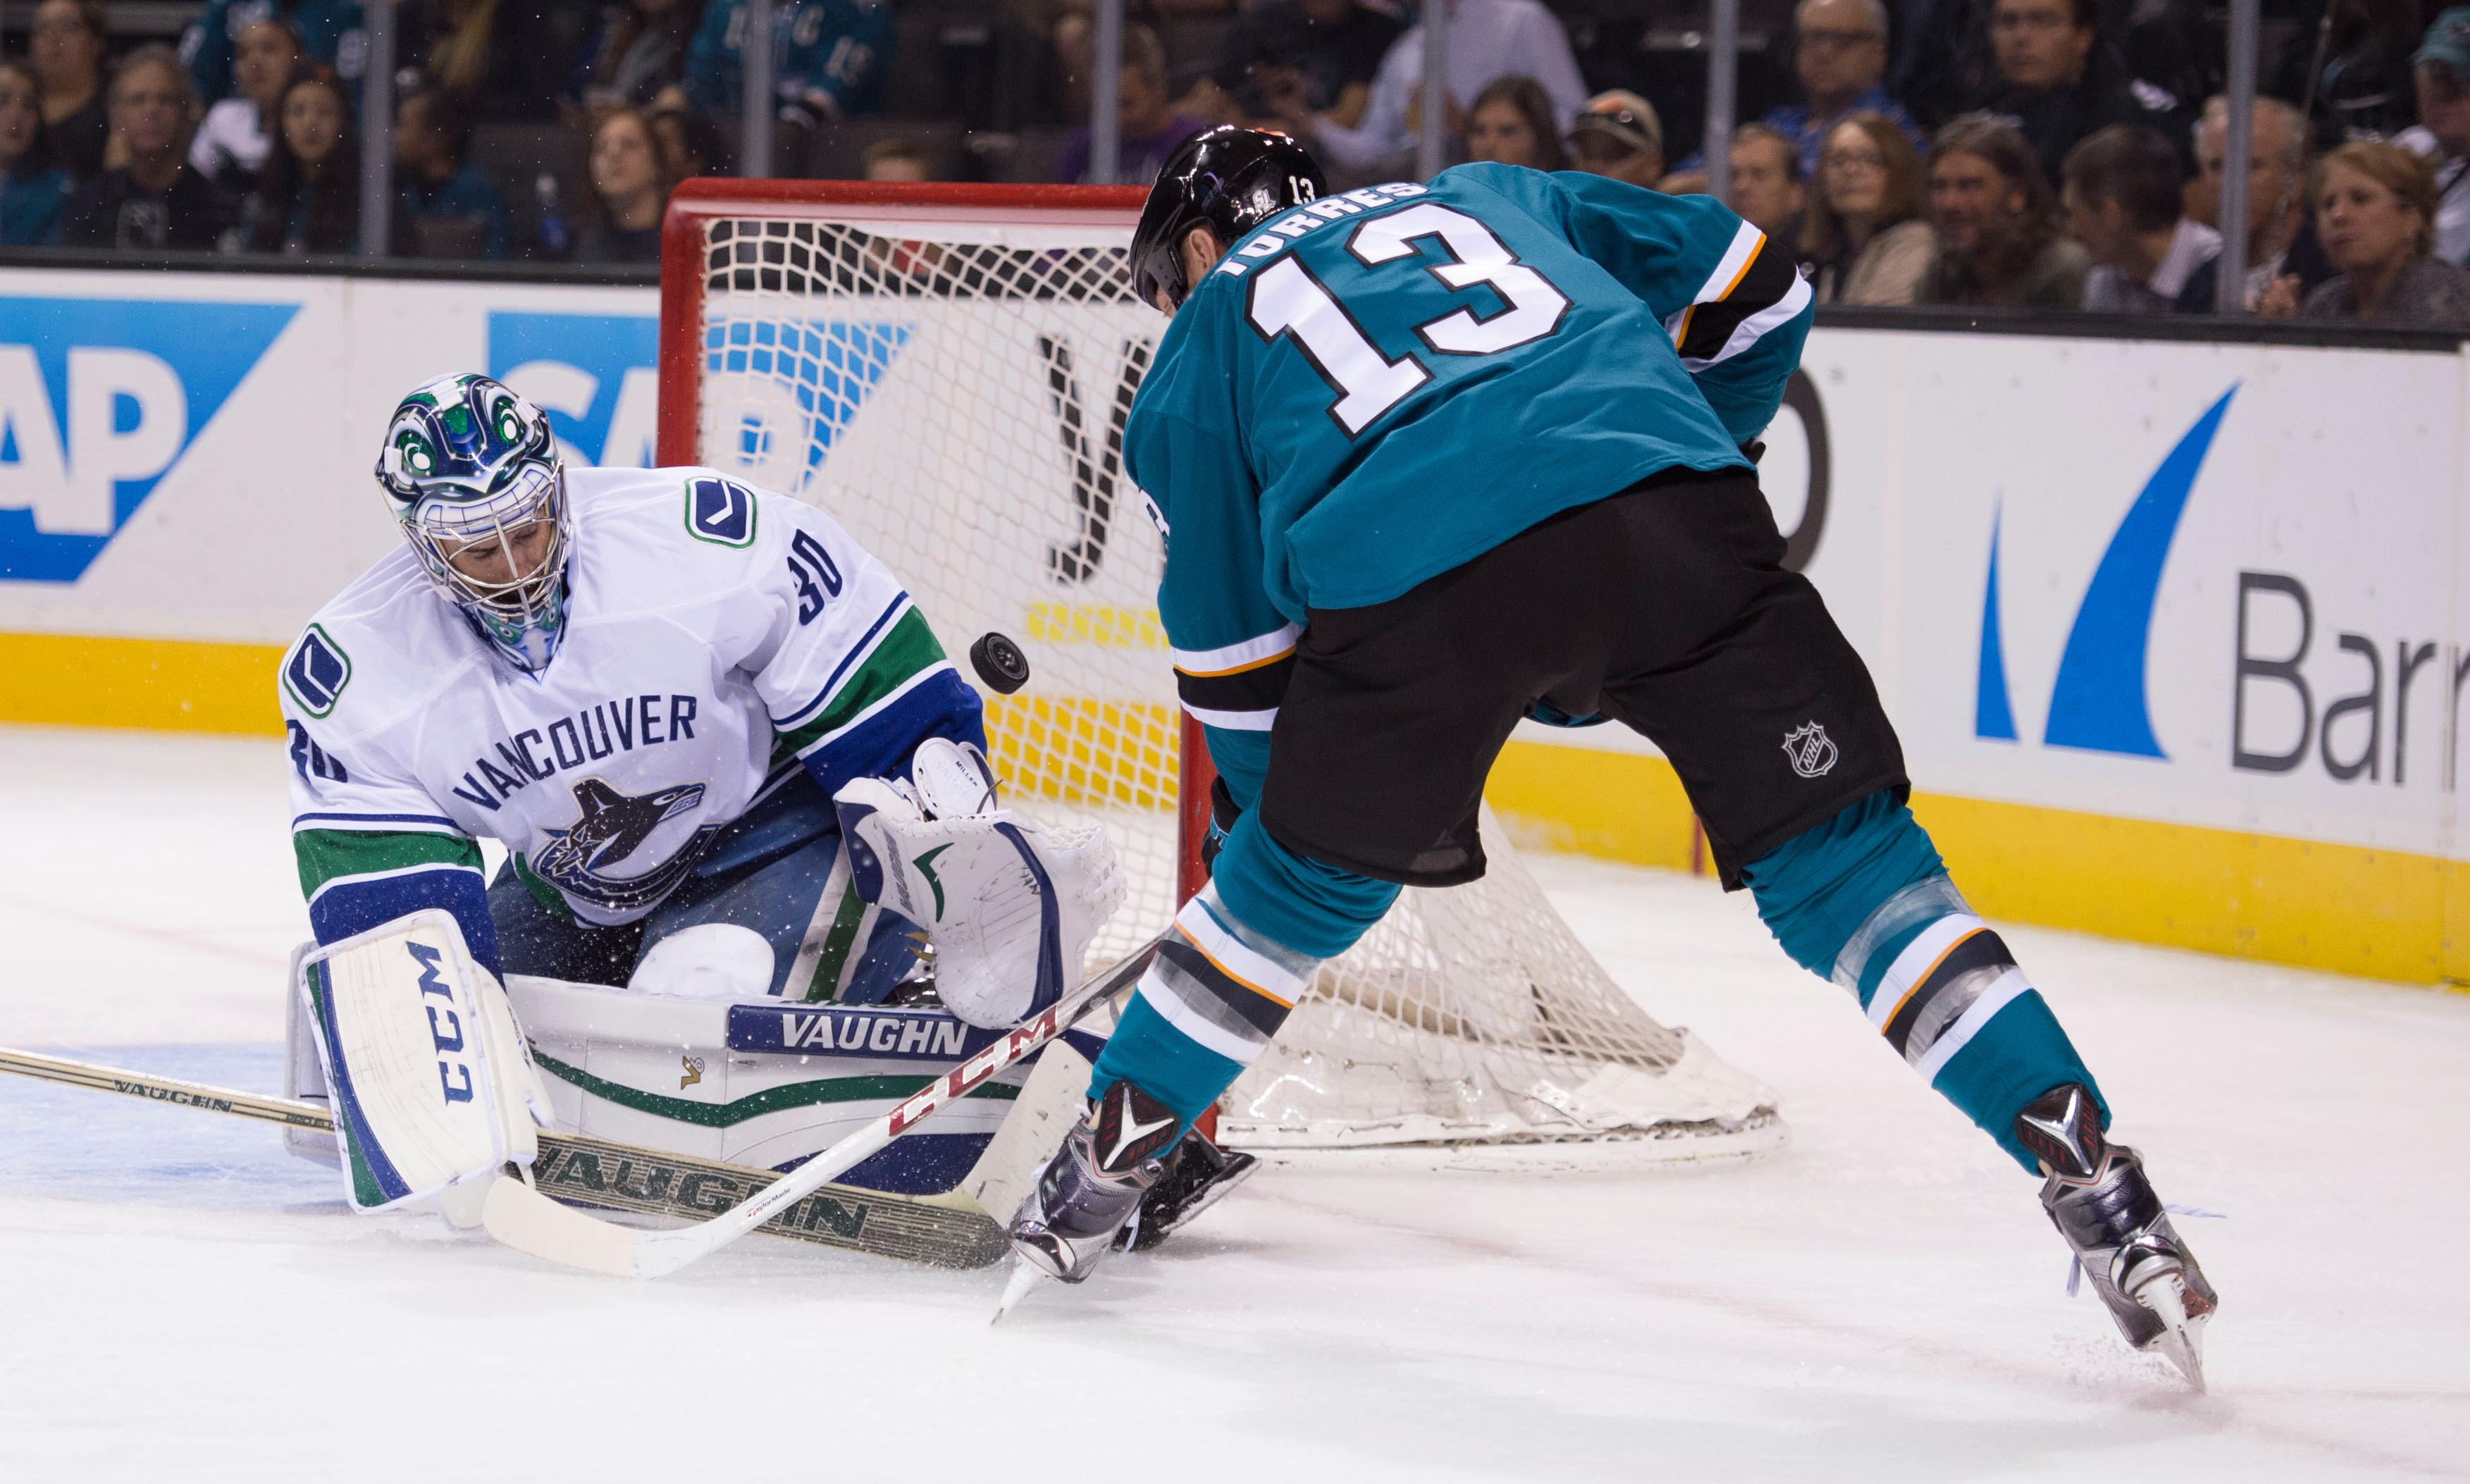 San Jose Sharks ace Raffi Torres banned for 41 games for brutal check to the head